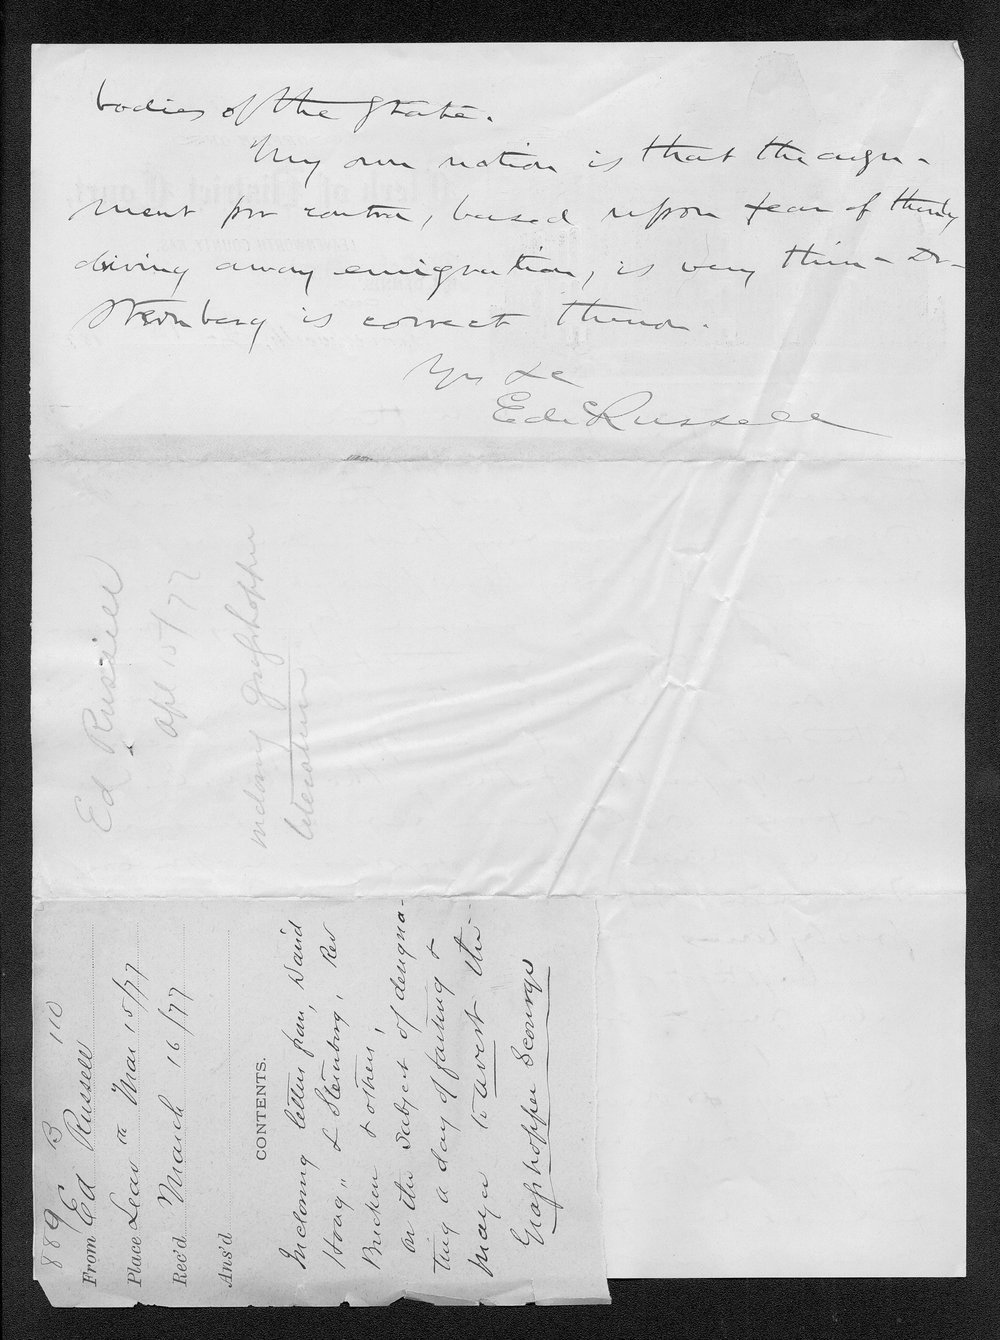 Governor George Anthony grasshoppers received correspondence - 6